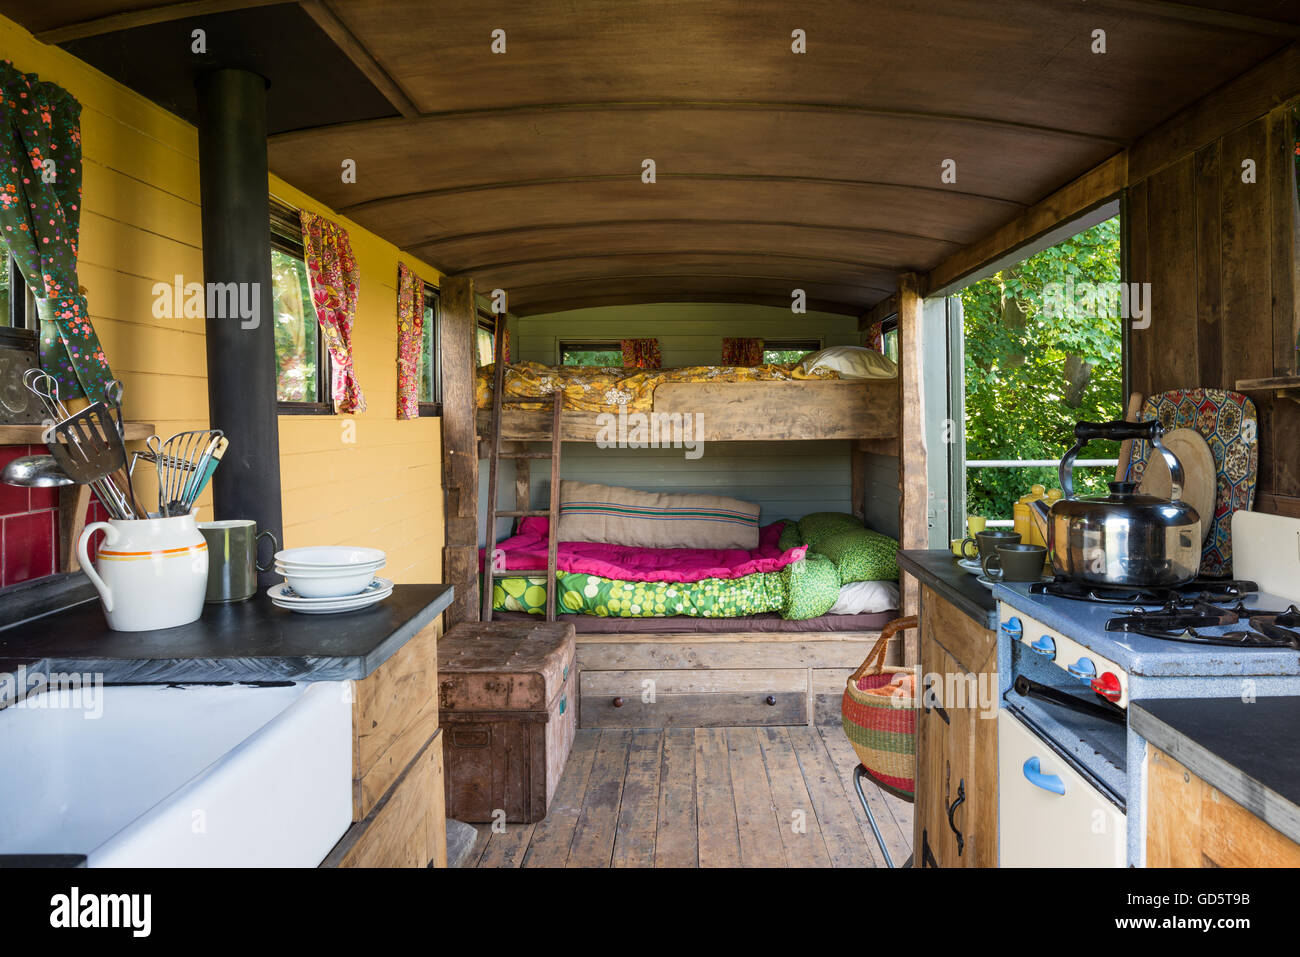 Interior of converted Brockhouse military wagon hut with wood cladding; slate worktops and wood burning stove. - Stock Image